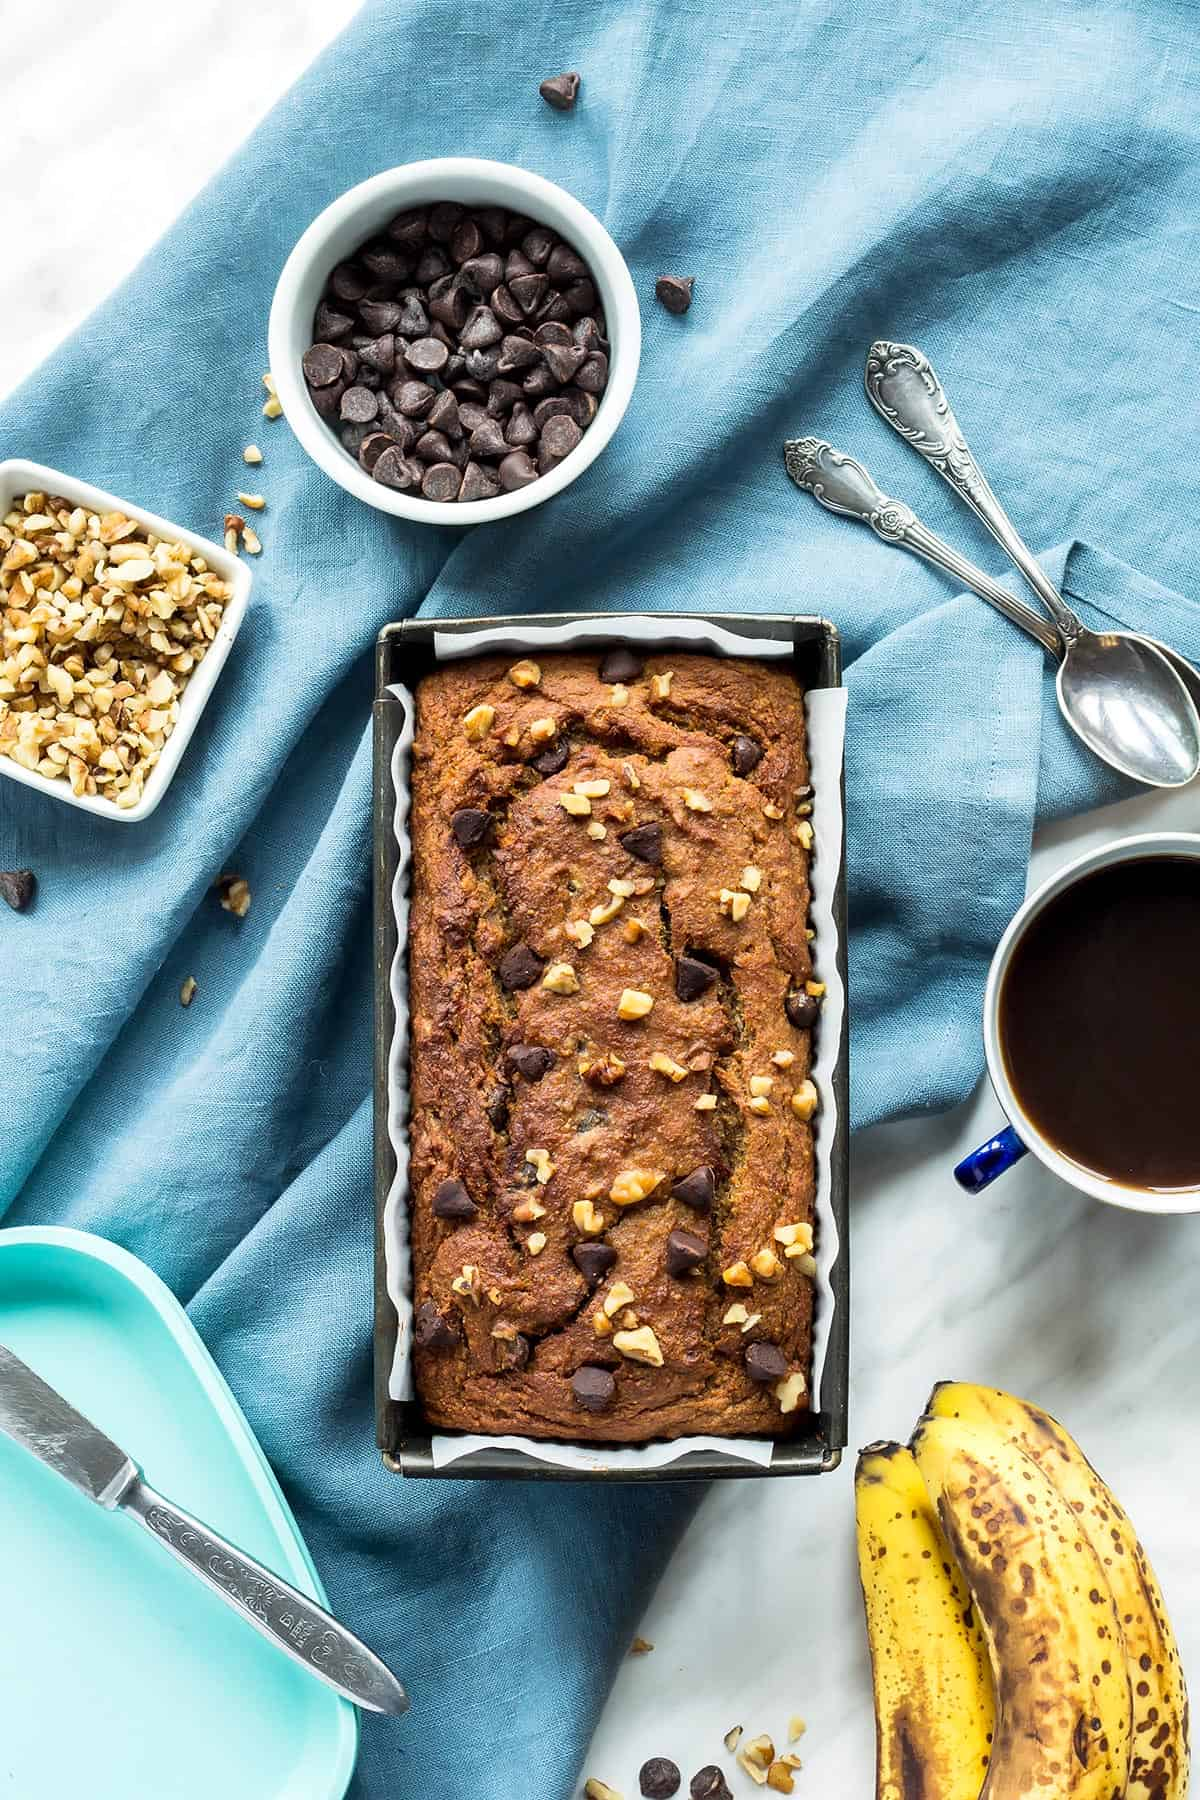 Overhead view of Coconut Flour Banana Bread in loaf pan